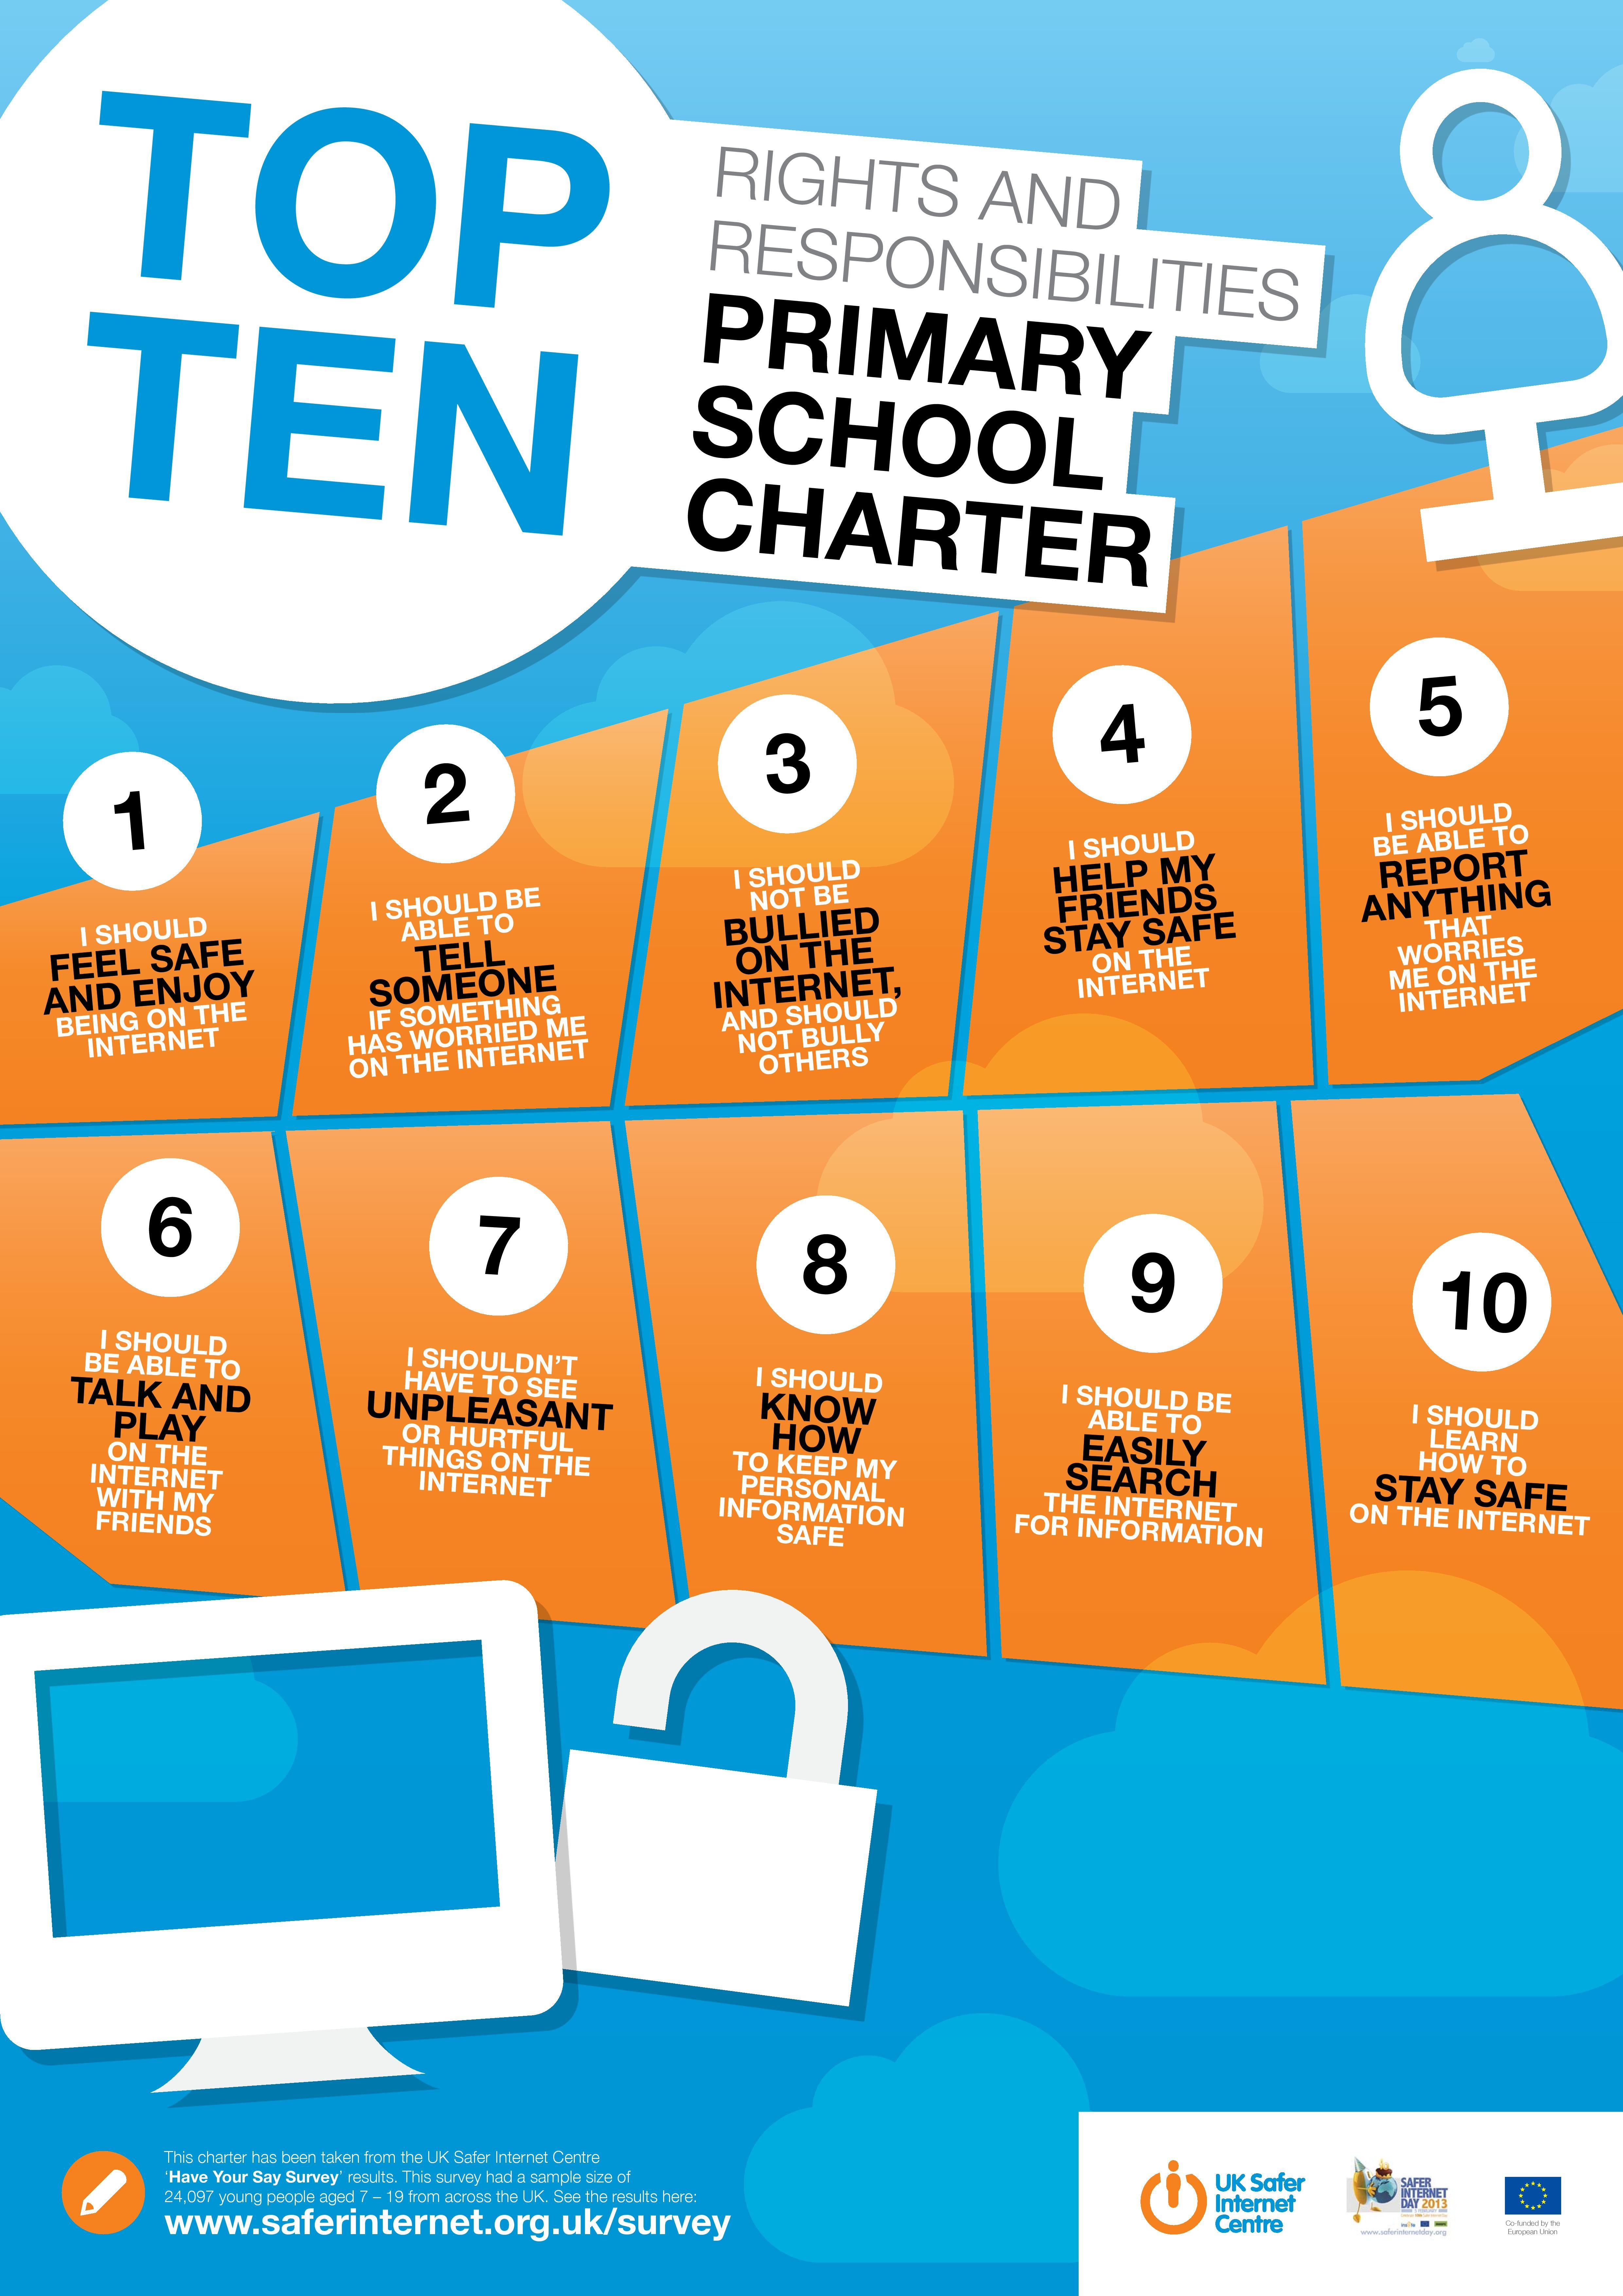 Http Www Saferinternet Org Uk Downloads Safer Internet Day 2013 Primary School Charter Jpg Rights And Responsibilities Teaching Empathy Bullying Prevention